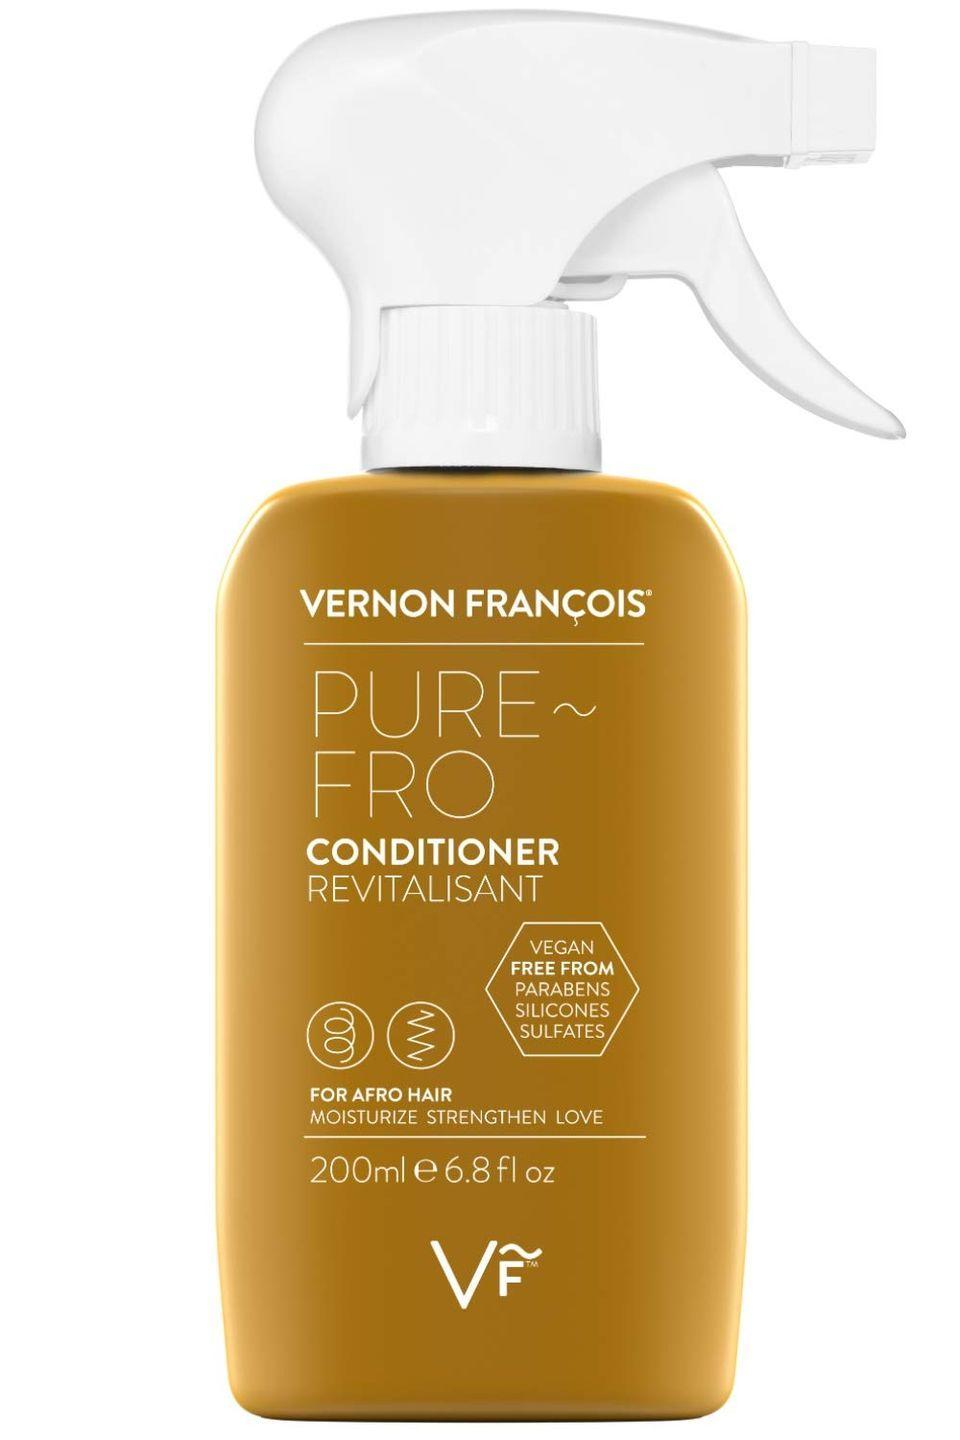 """<p>This one is for all my girls rocking a tight fro. This spray on wash out conditioner is excellent for detangling kinky, coily and tight curl textures. Filled with nourishing ingredients like eucalyptus and lavender oil this conditioner was formulated to strengthen delicate strands. </p><p><a class=""""link rapid-noclick-resp"""" href=""""https://www.amazon.com/Vernon-Fran%C3%A7ois-Pure-Fro-Conditioner/dp/B07BNWCKH1/ref=sr_1_5?dchild=1&keywords=Vernon+Francois+Pure+Fro+Conditioner&qid=1626886568&sr=8-5&tag=syn-yahoo-20&ascsubtag=%5Bartid%7C10065.g.37036119%5Bsrc%7Cyahoo-us"""" rel=""""nofollow noopener"""" target=""""_blank"""" data-ylk=""""slk:Shop Now"""">Shop Now</a></p>"""